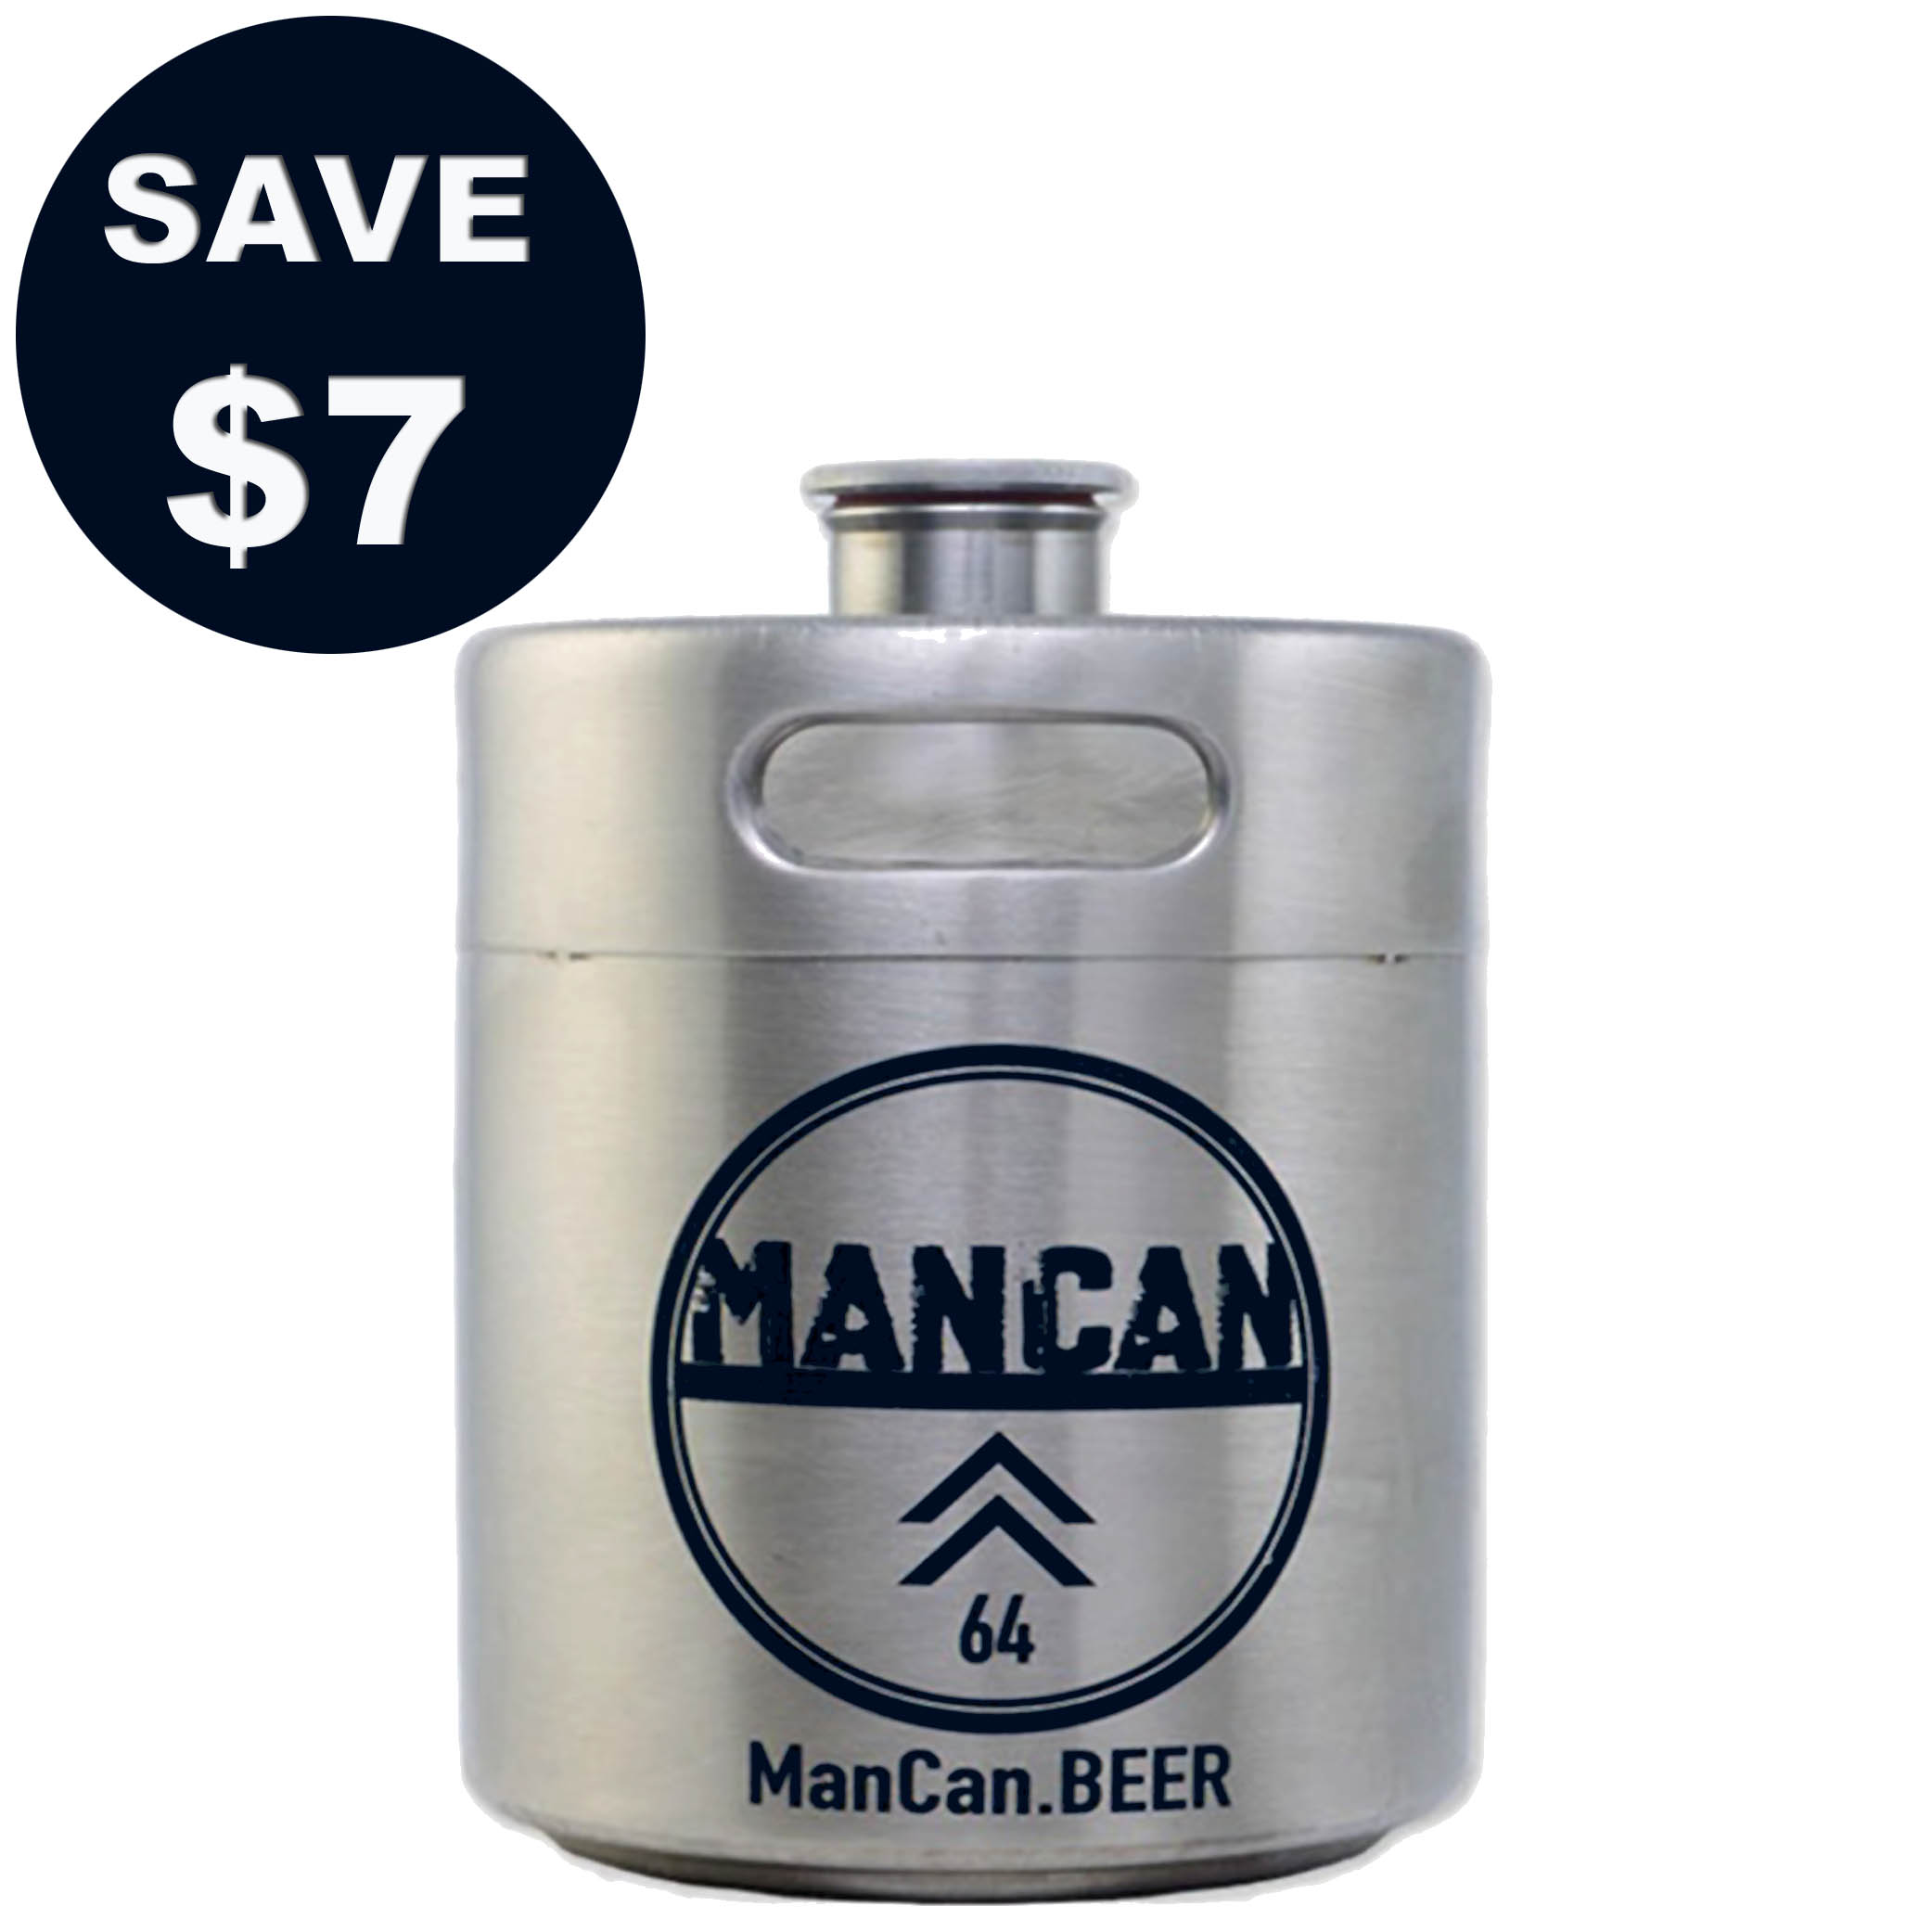 Save $7 on a Stainless Steel Mini-Keg Growler with this More Beer Coupon Coupon Code